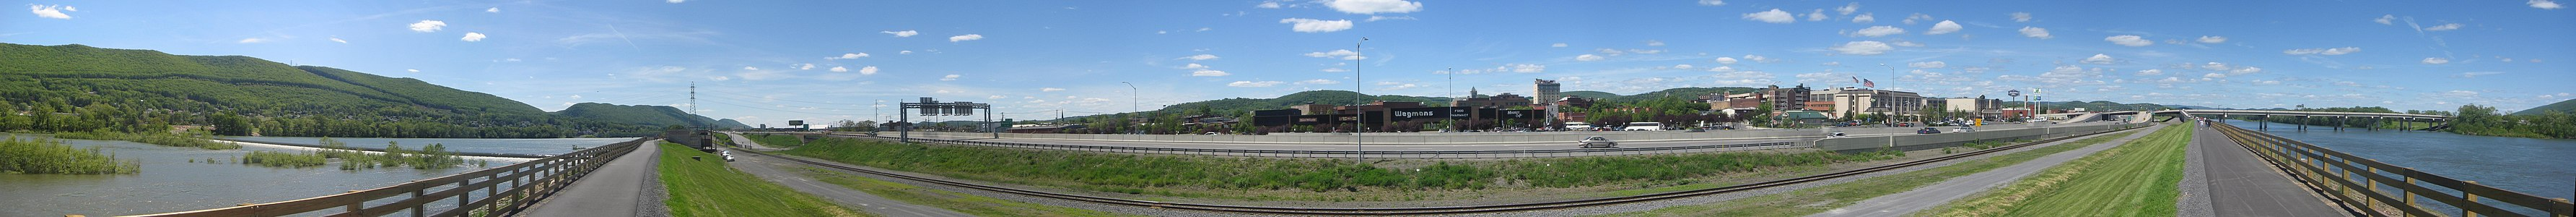 Williamsport, Pennsylvania panorama.jpg